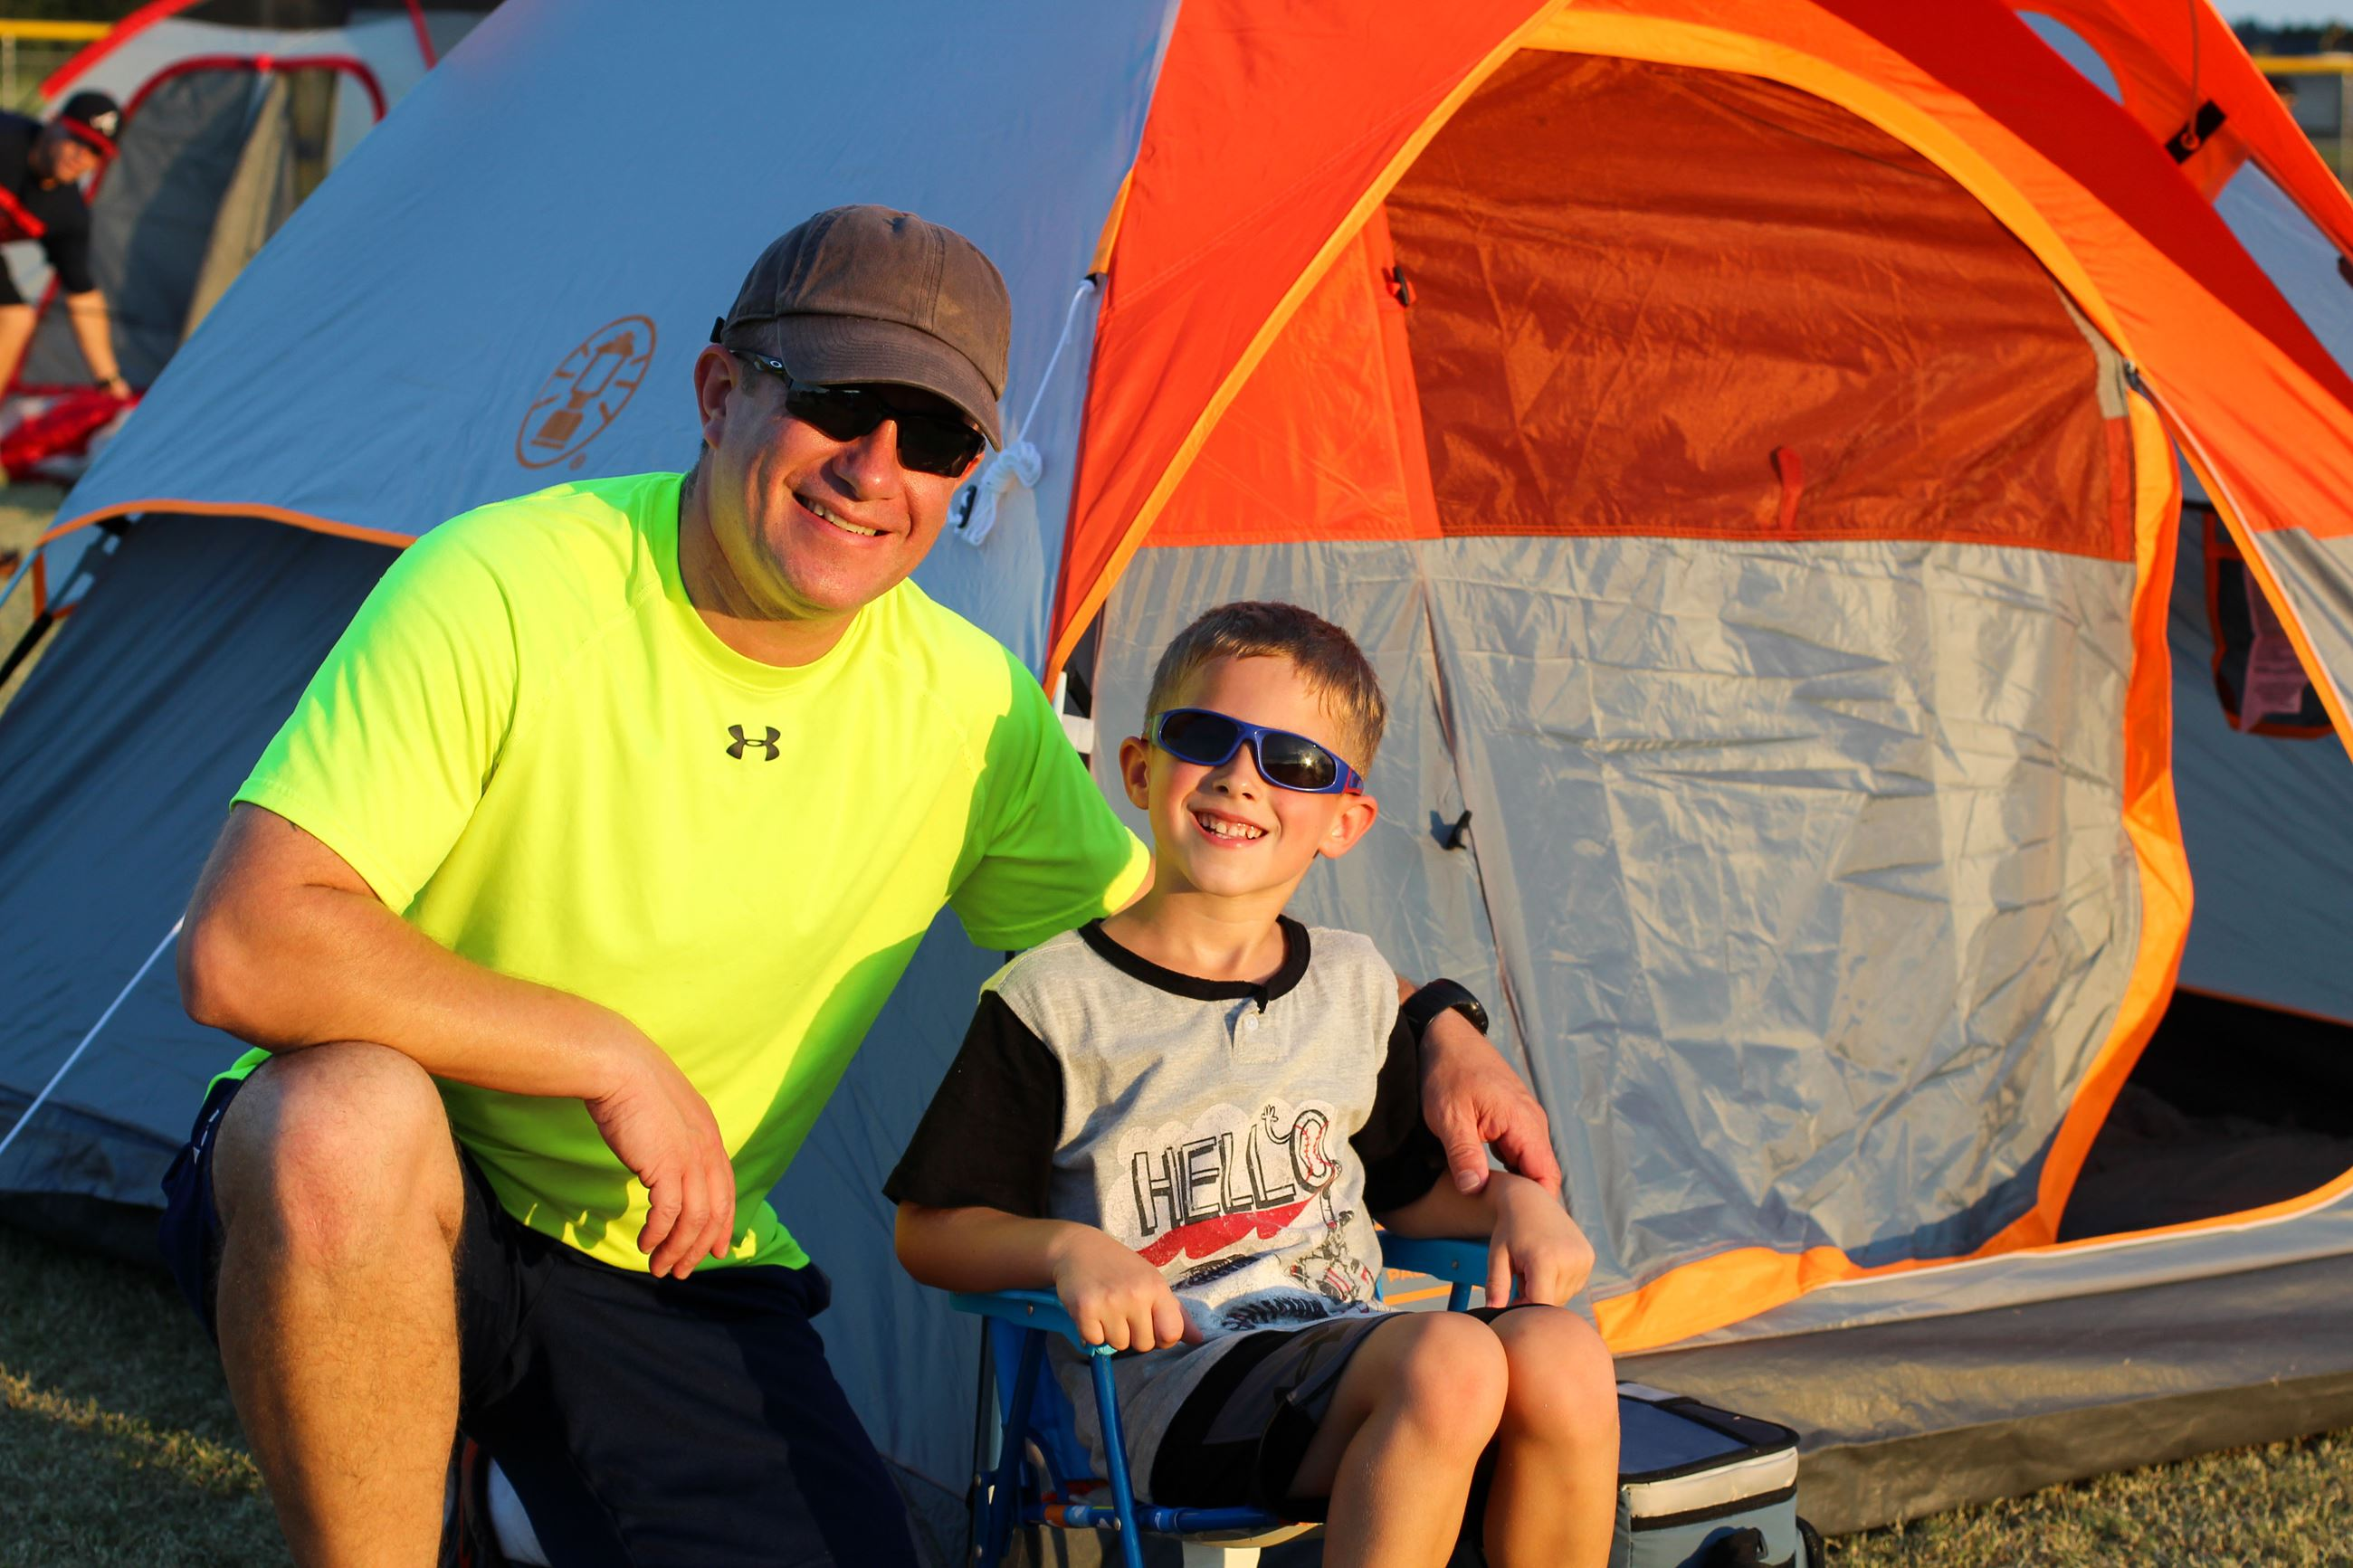 Image of father and son smiling in front of tent.